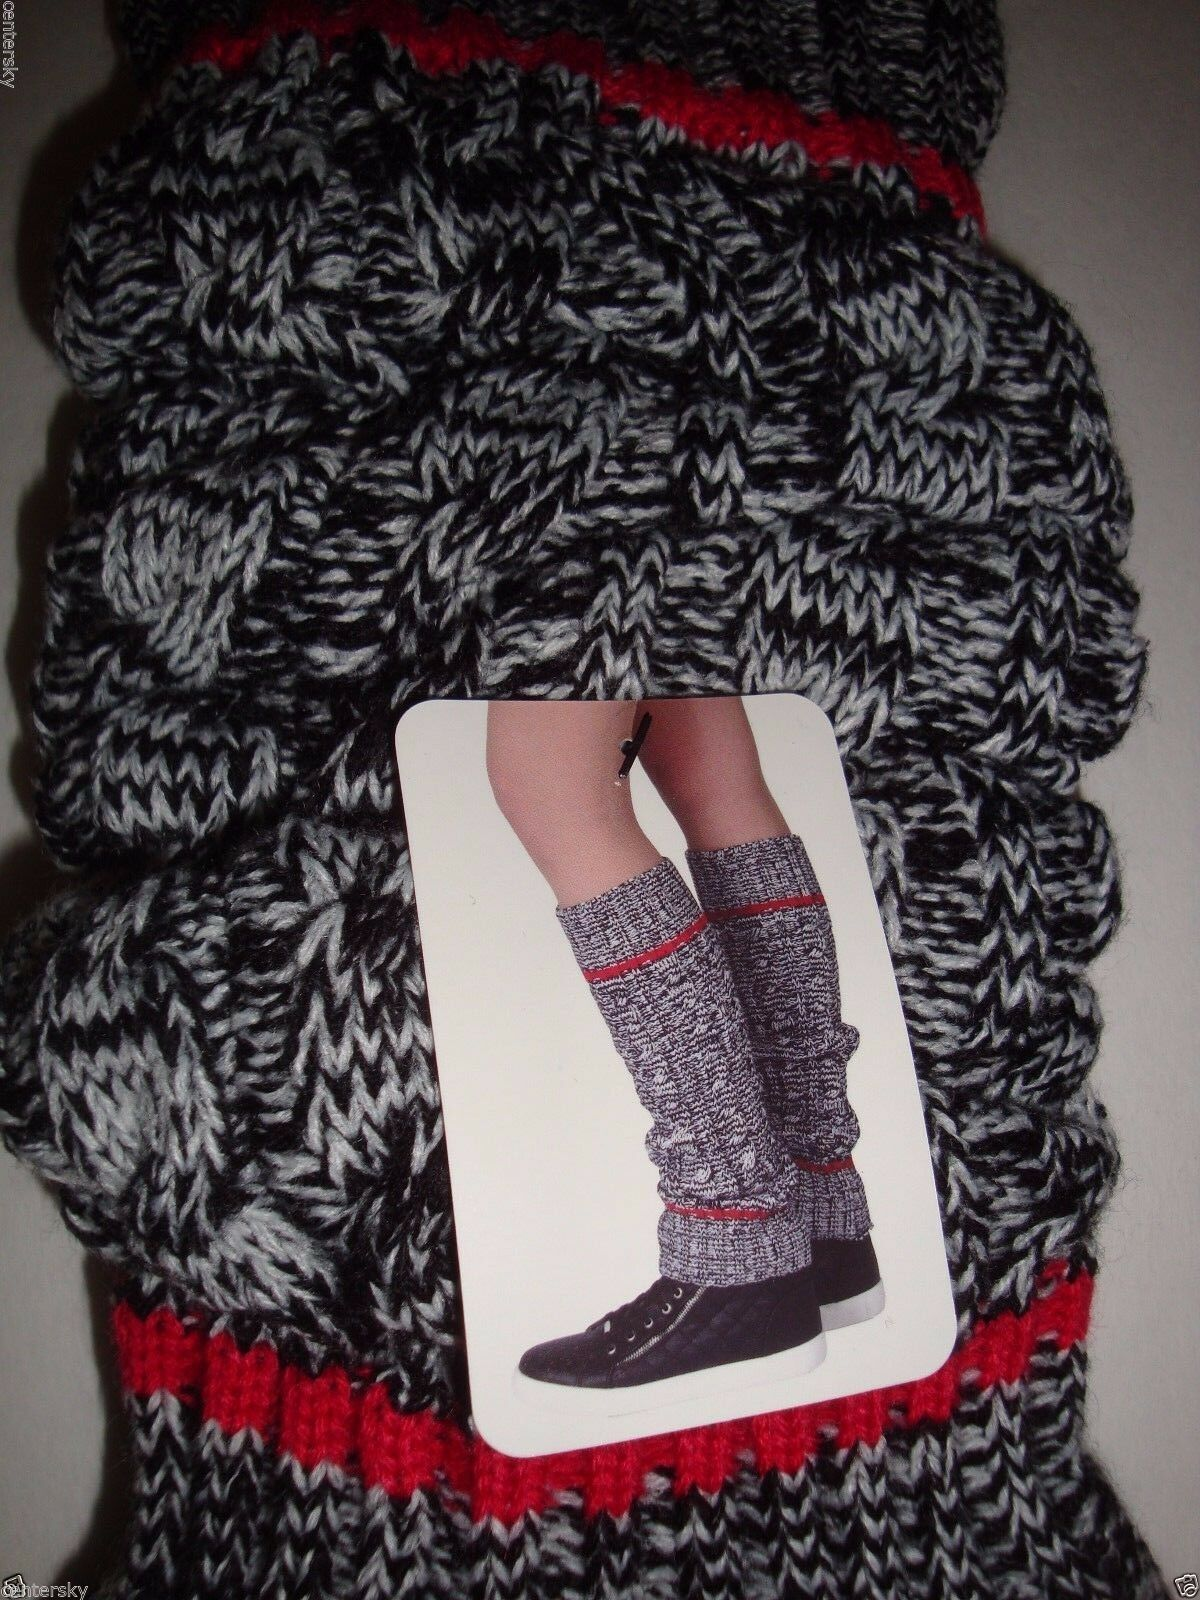 New $18 Steve Madden Legwear Women's Leg Warmers Black White Red Cable Knit OS image 2